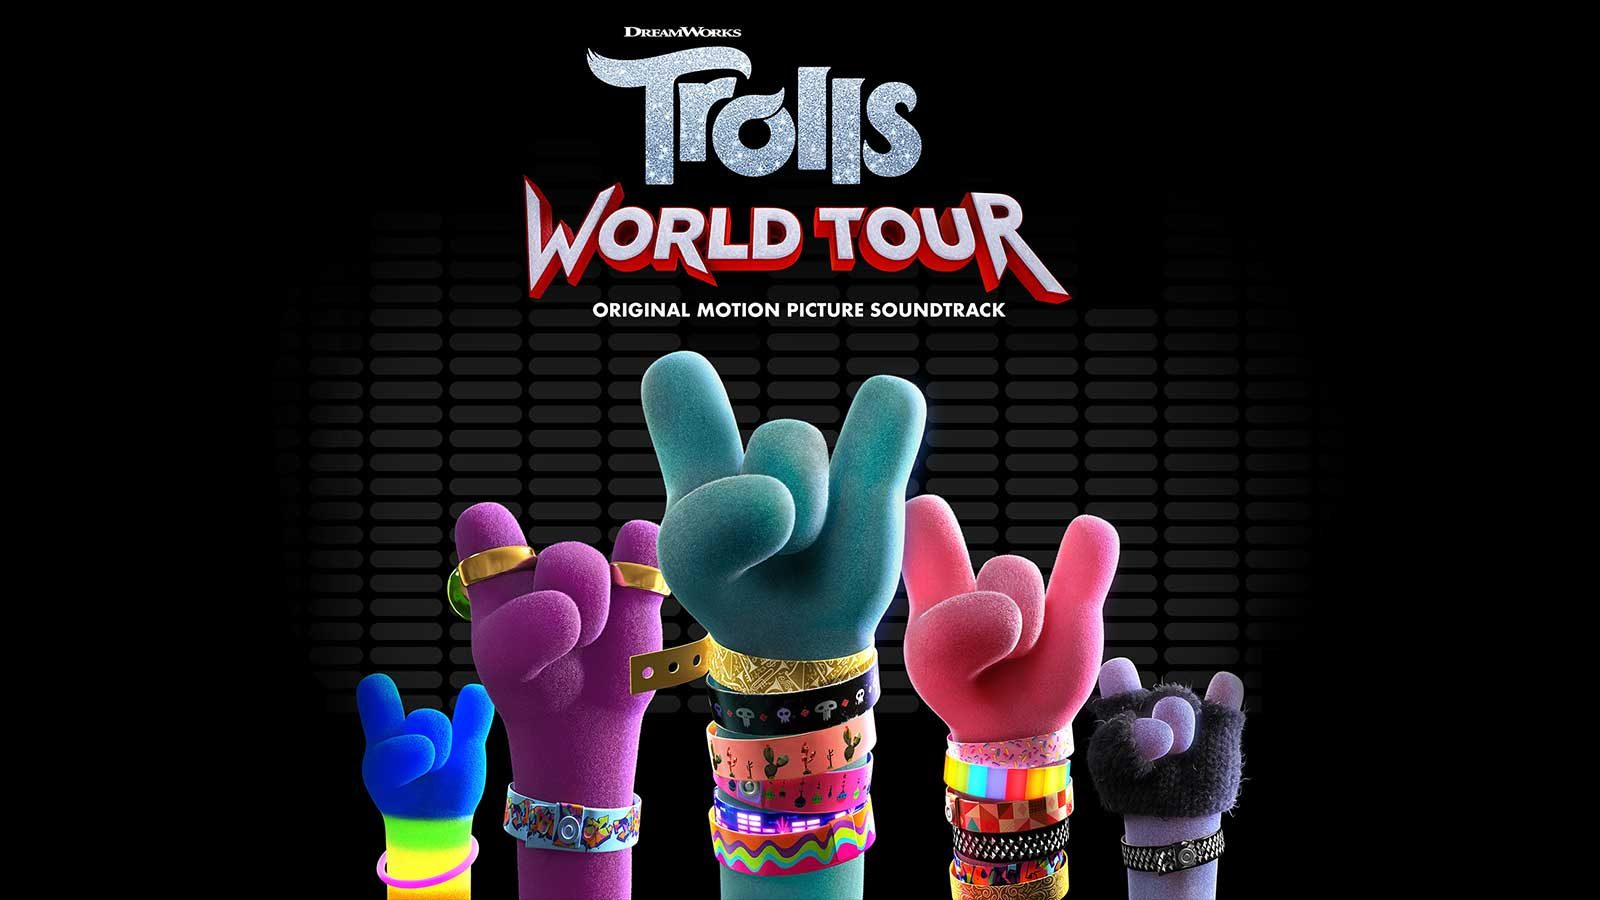 Trolls Album Artwork